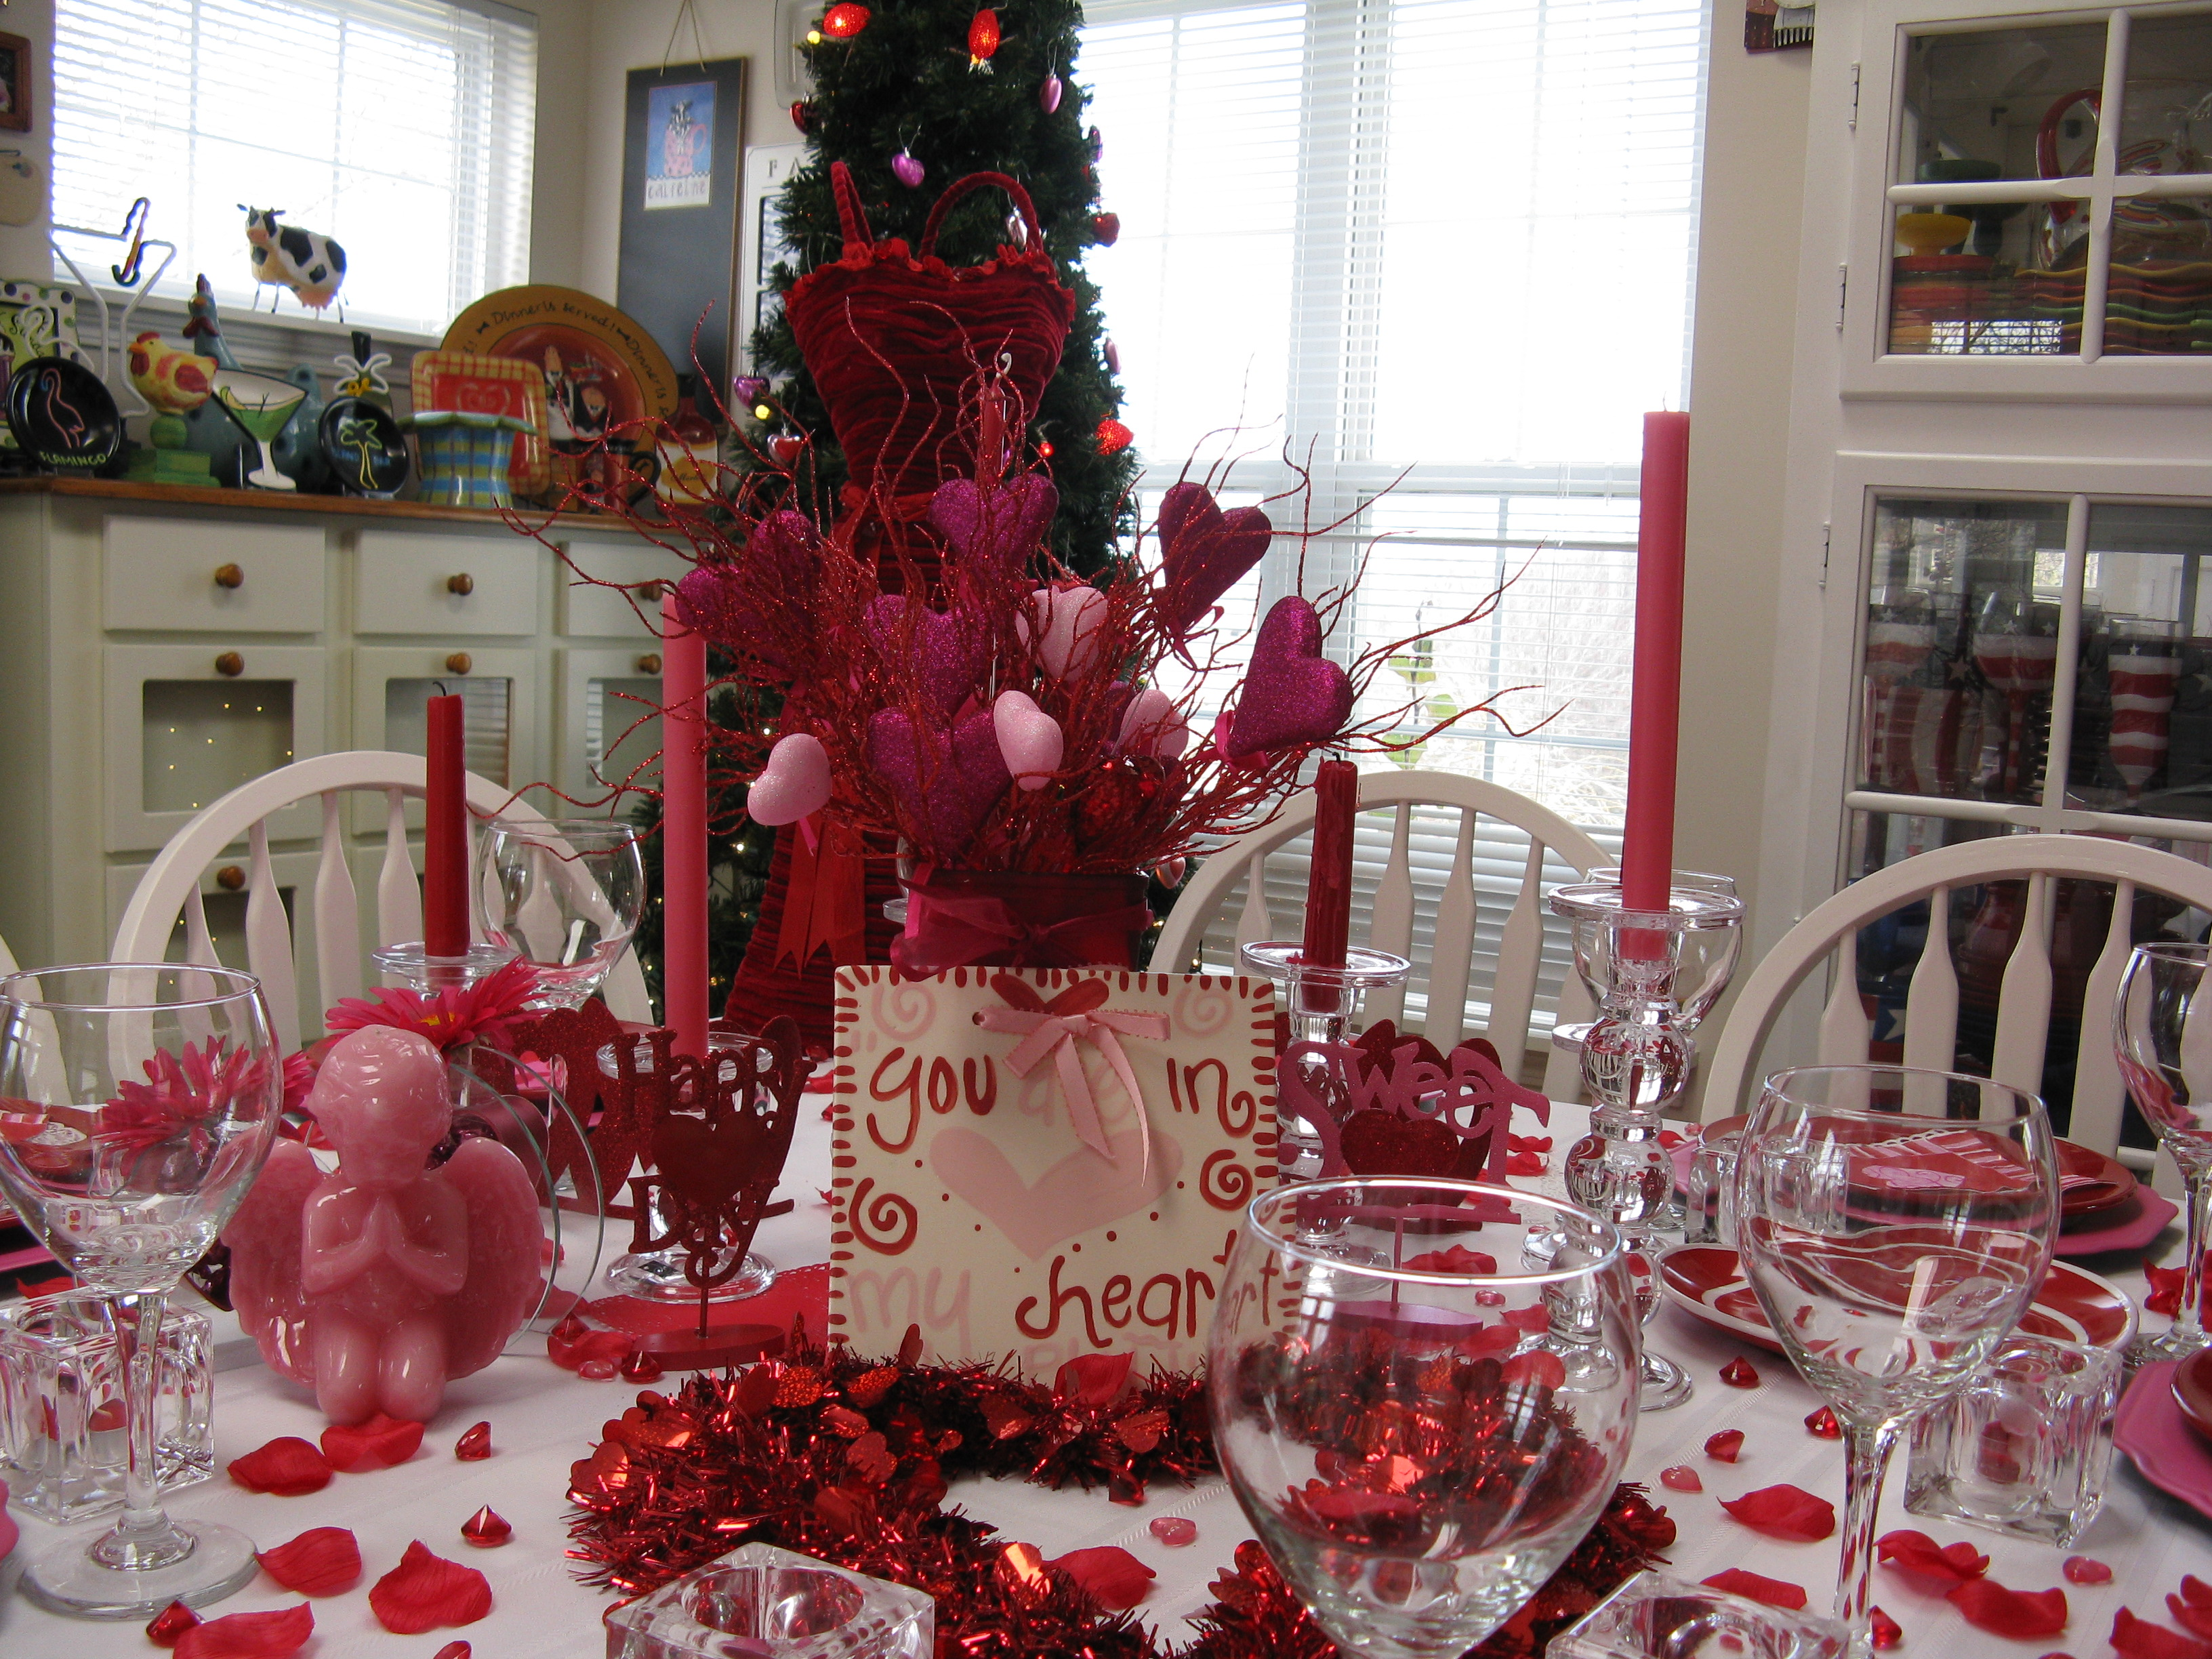 Decorate your dining table inspirational ideas for for Home decorations for valentine s day